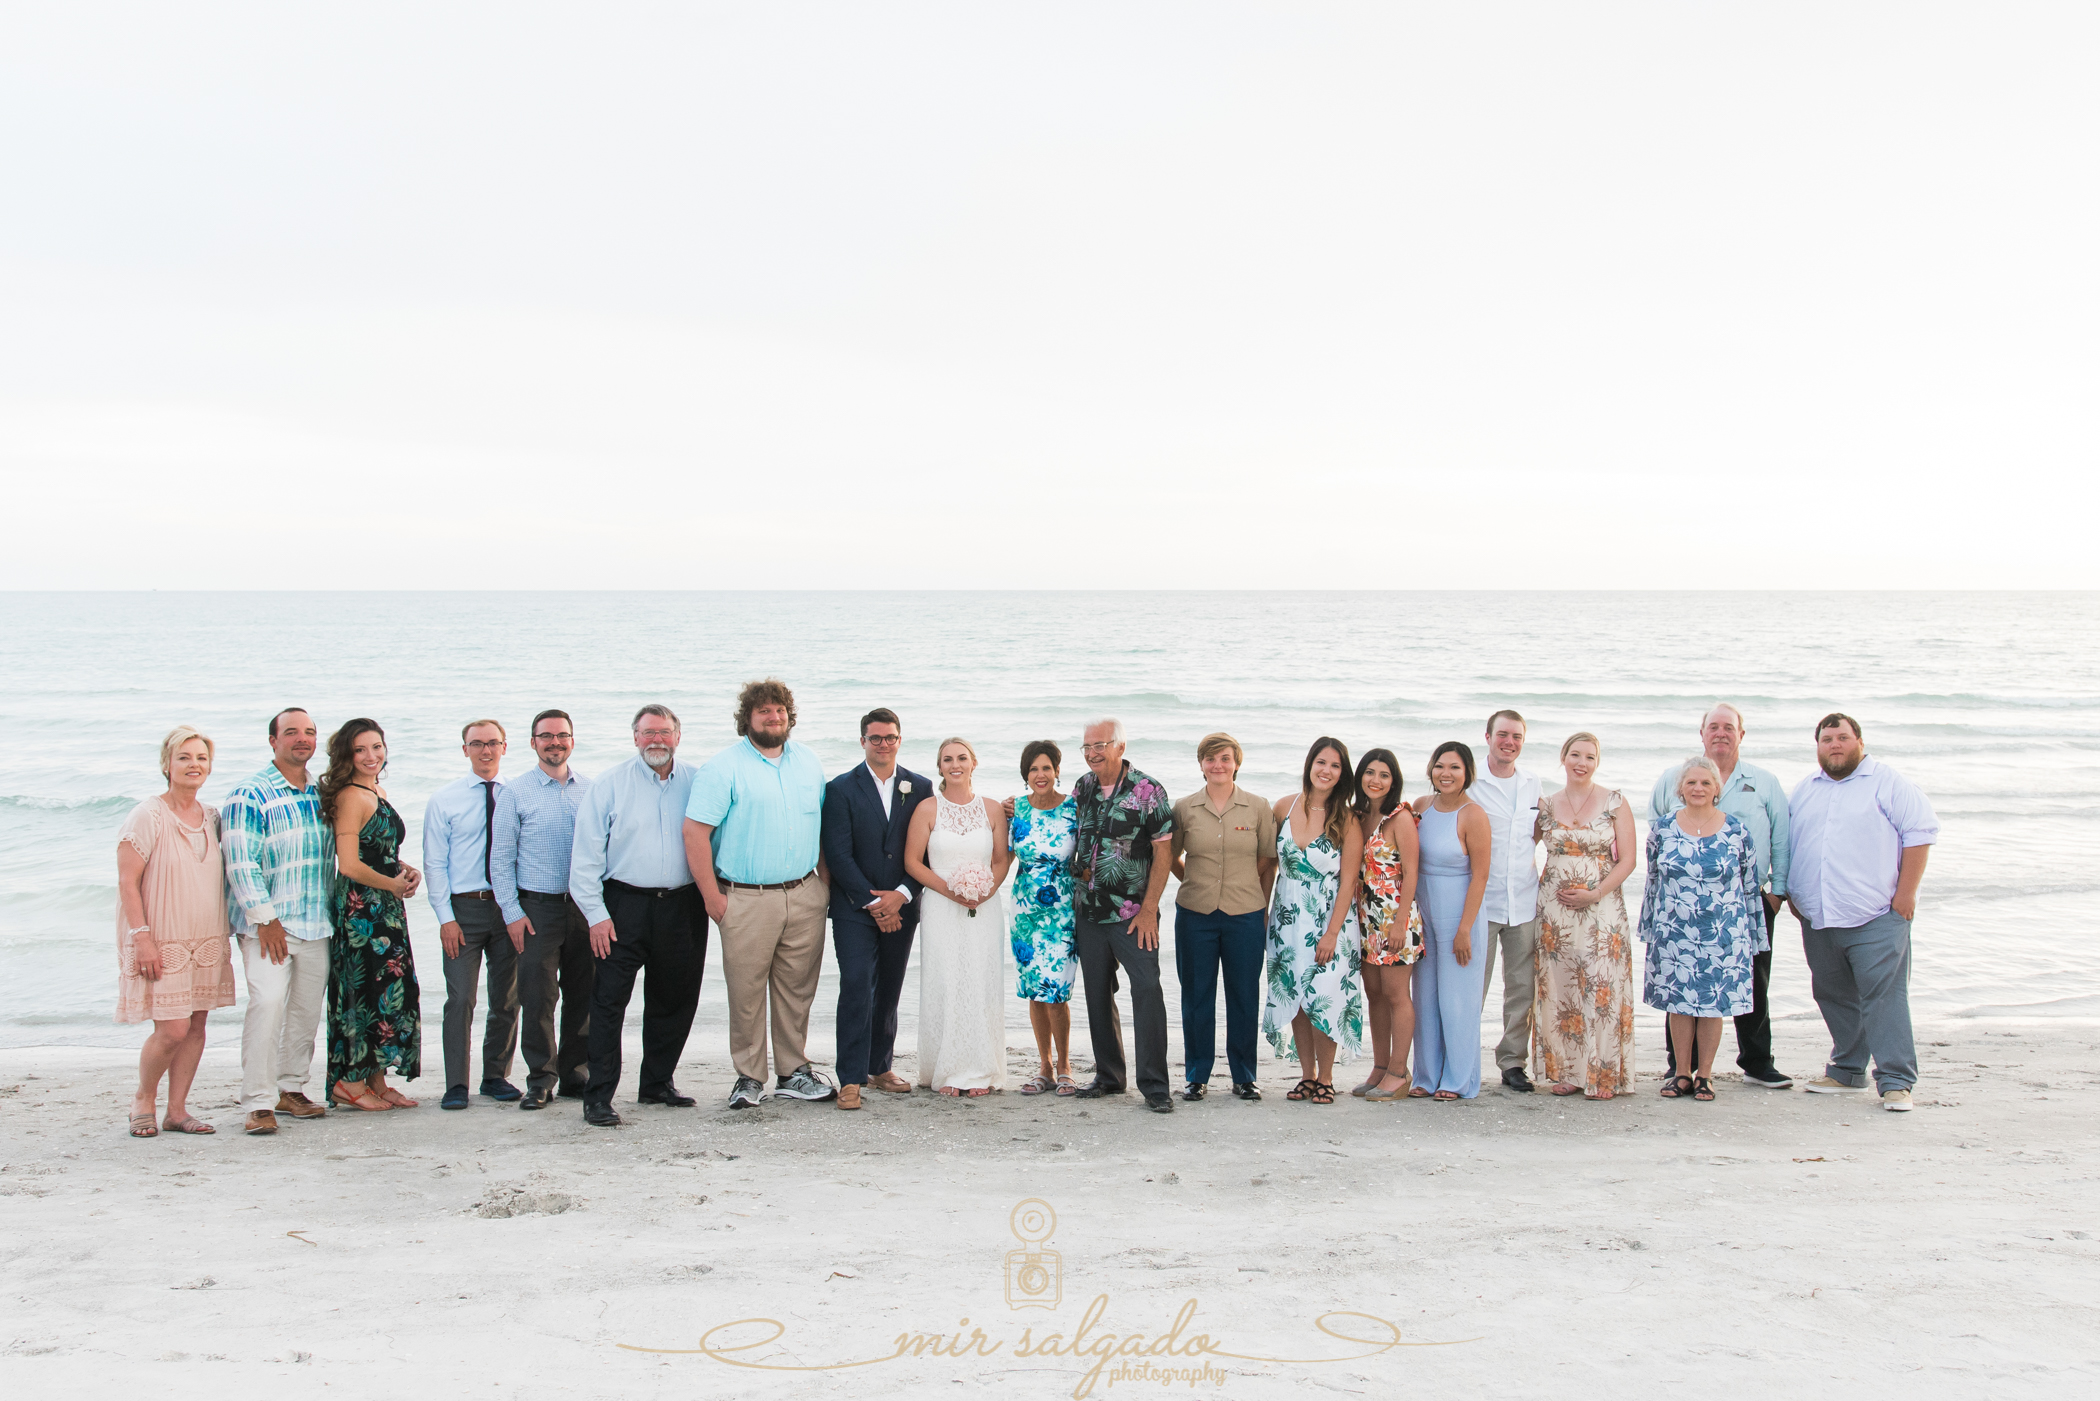 family-photo-wedding-shot, wedding-family-portrait, family-photos-on-your-wedding-day, how-to-involve-your-family-in-wedding-photos